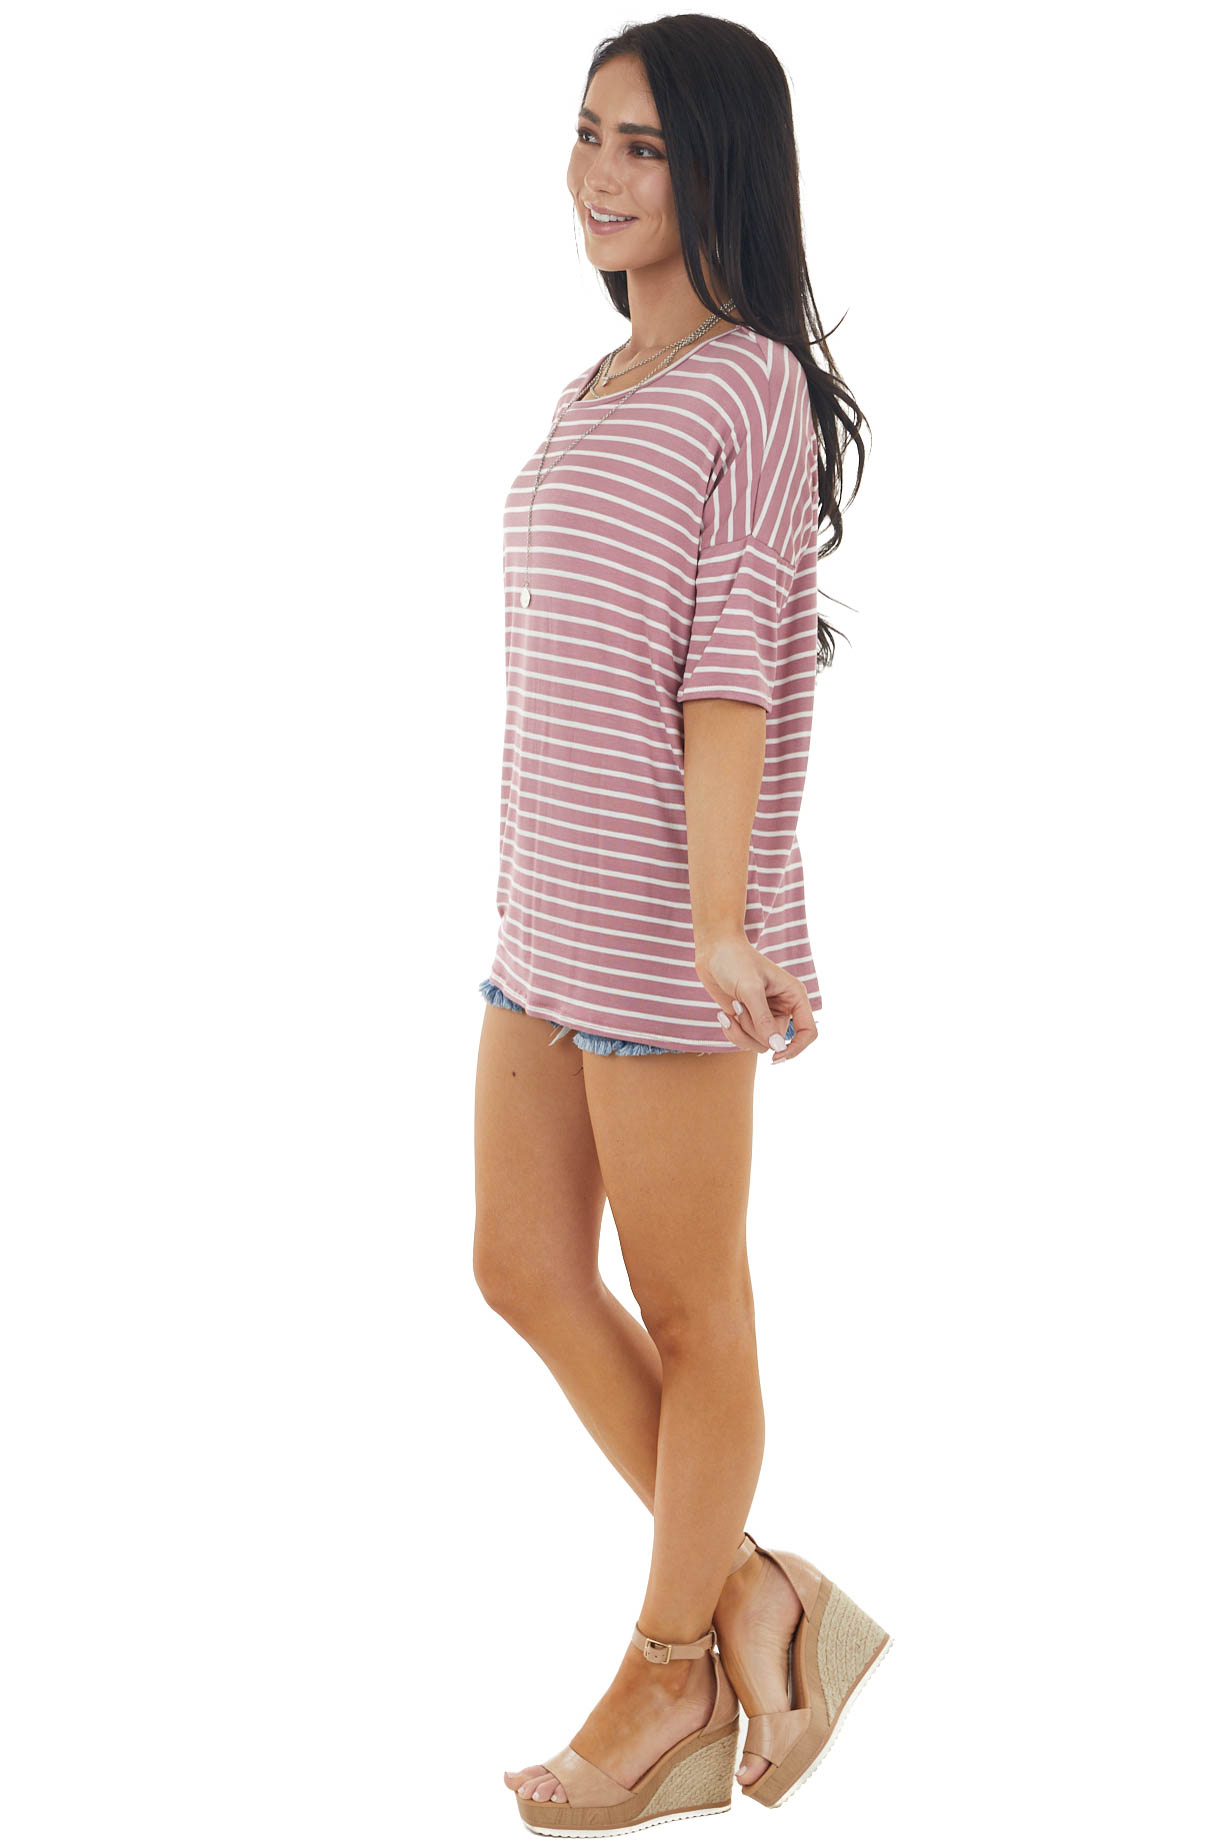 Mauve and Ivory Striped Print Short Sleeve Knit Top